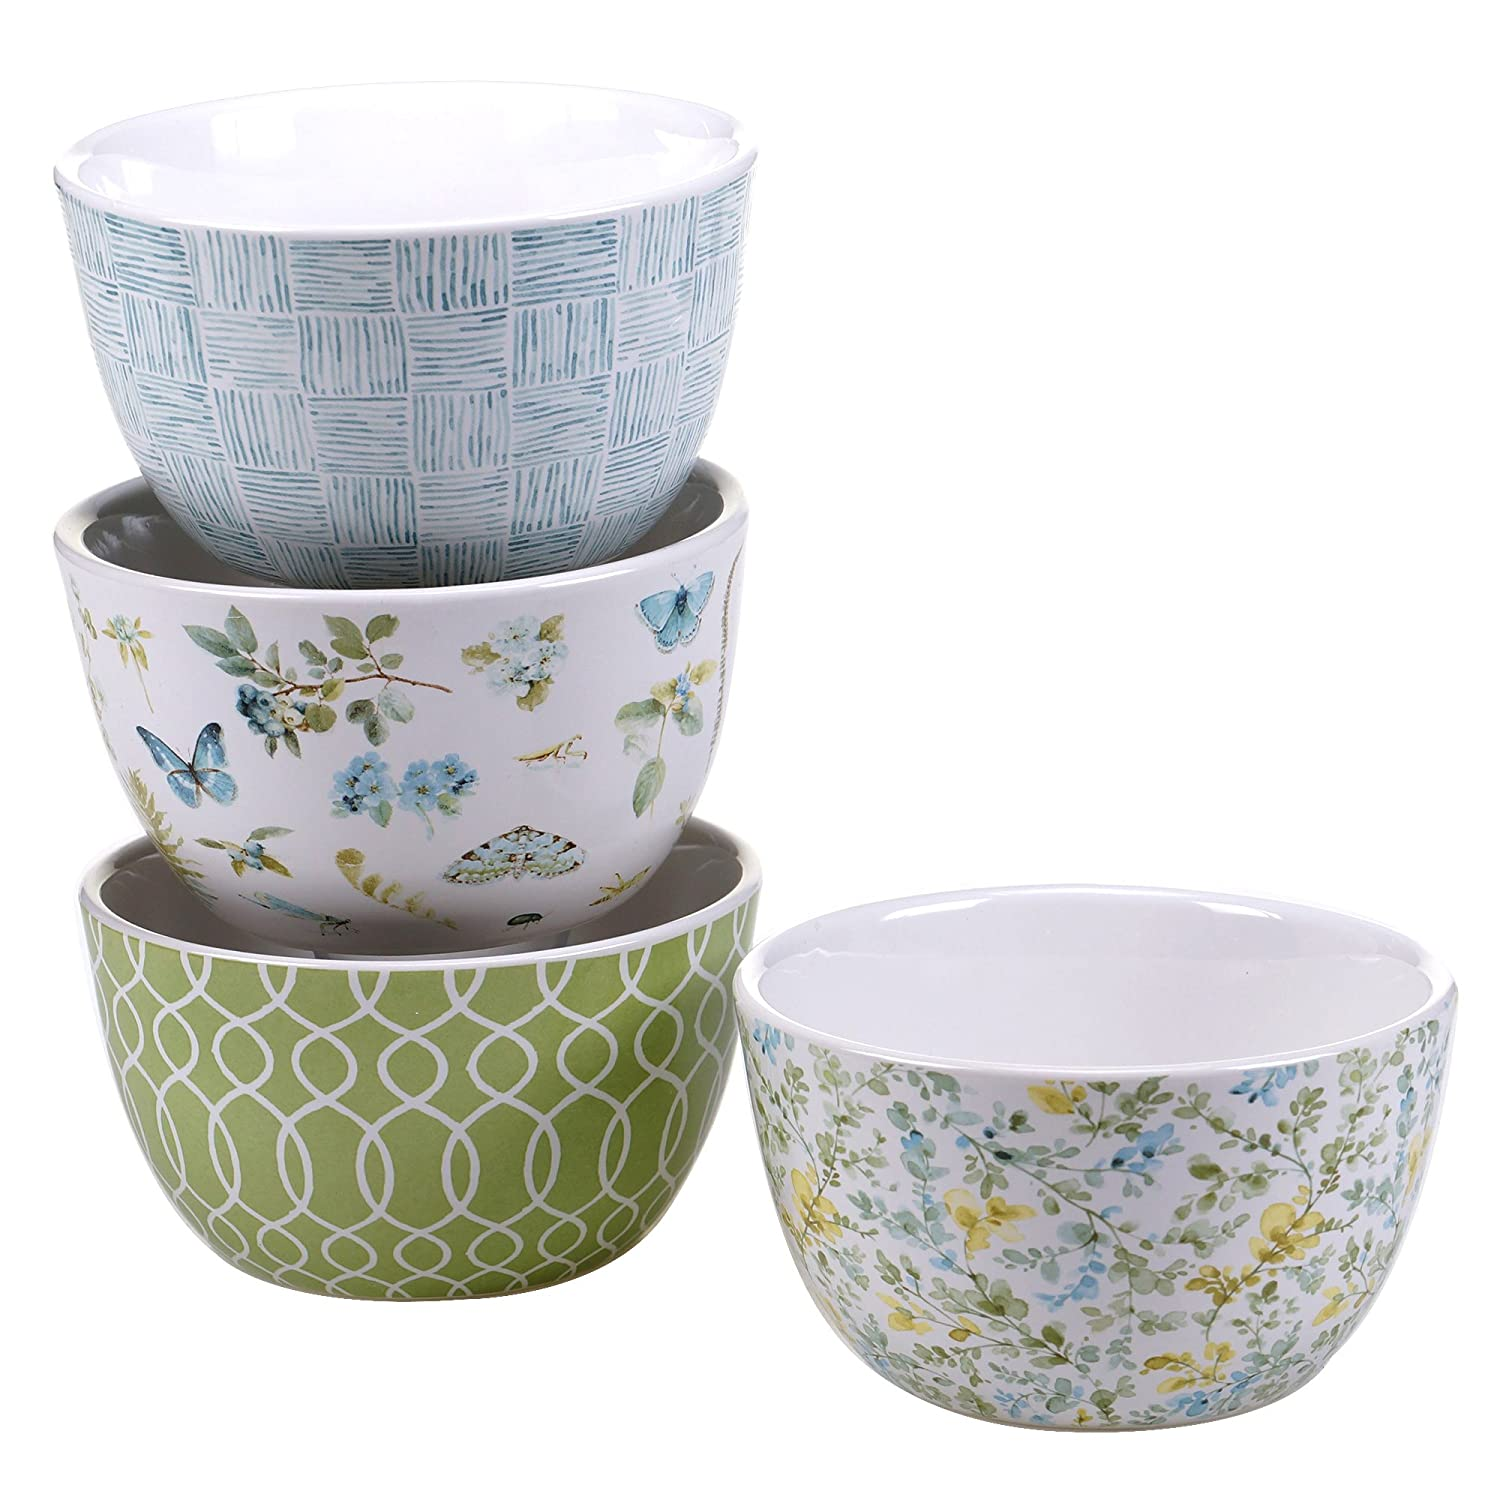 超人気新品 Certified International Ice The Greenhouse マルチカラー Ice B01LXG1C5W Cream Bowls (Set of 4), 5.25', Multicolor [並行輸入品] 5.25\ マルチカラー B01LXG1C5W, ランブル バイ ジーマ:84517bdd --- a0267596.xsph.ru